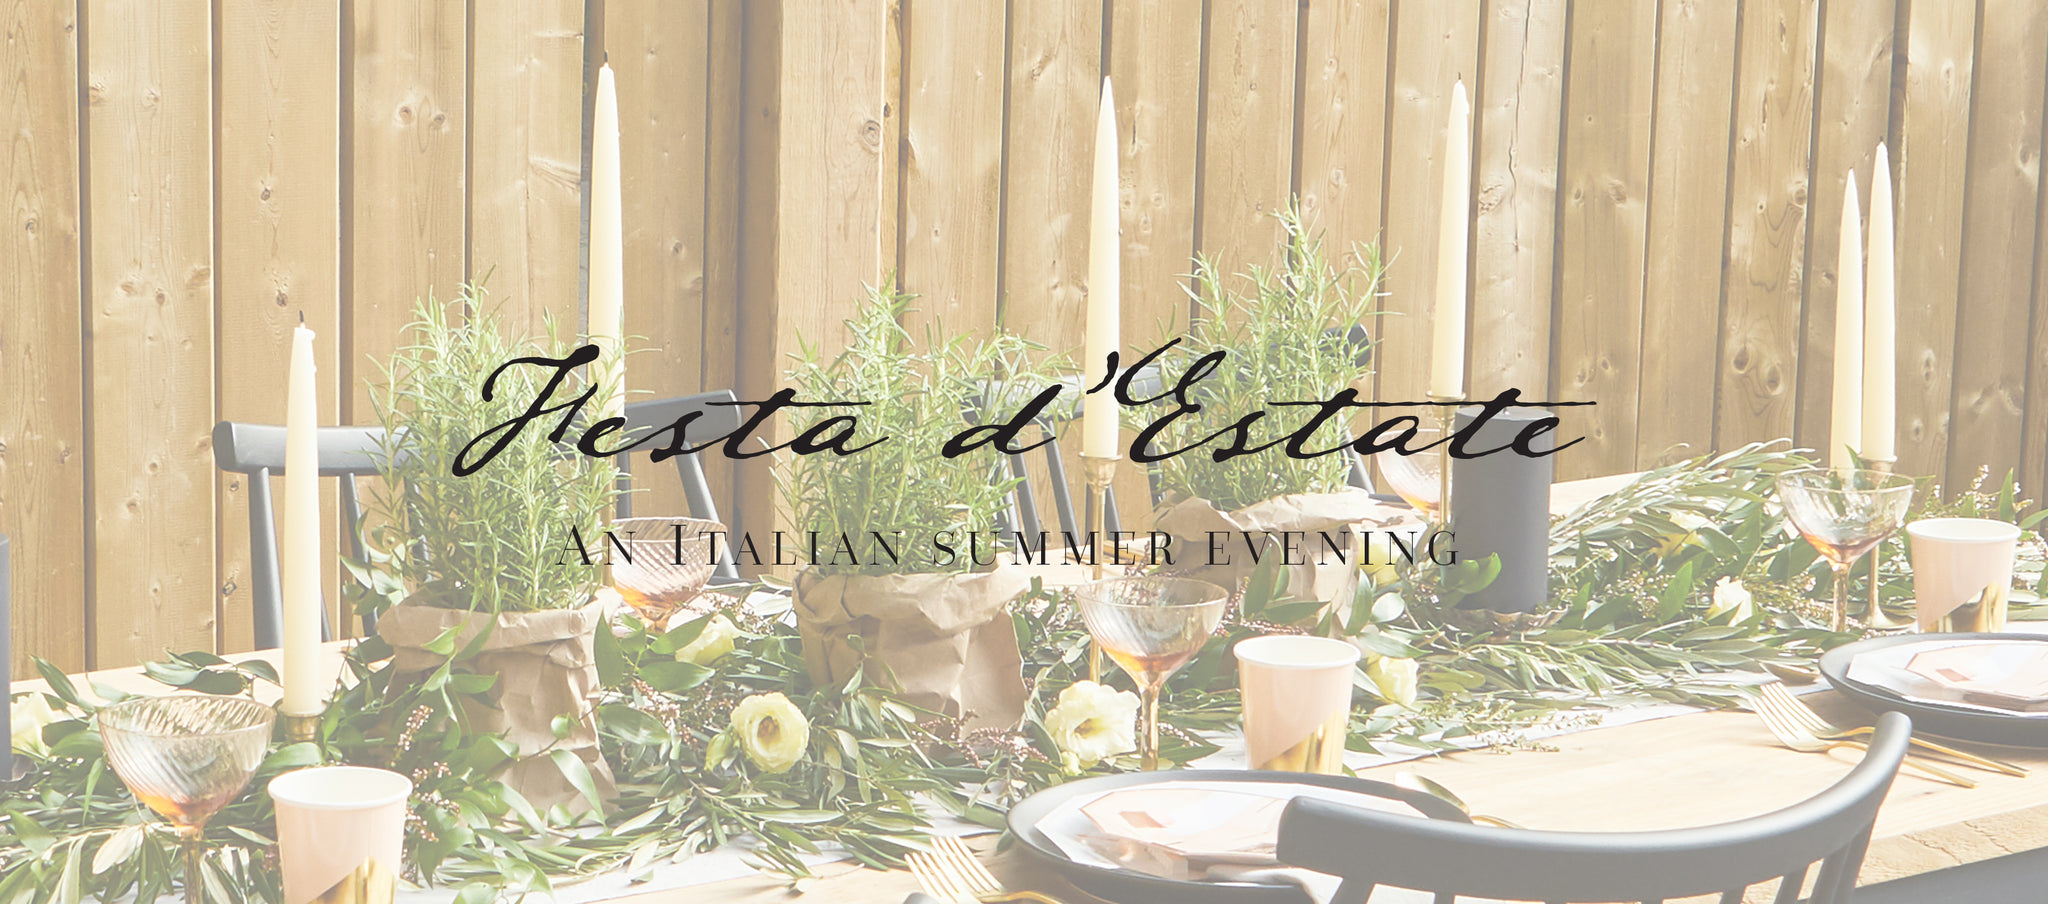 PARTY ET CIE EVENTS - AN ITALIAN SUMMER EVENING